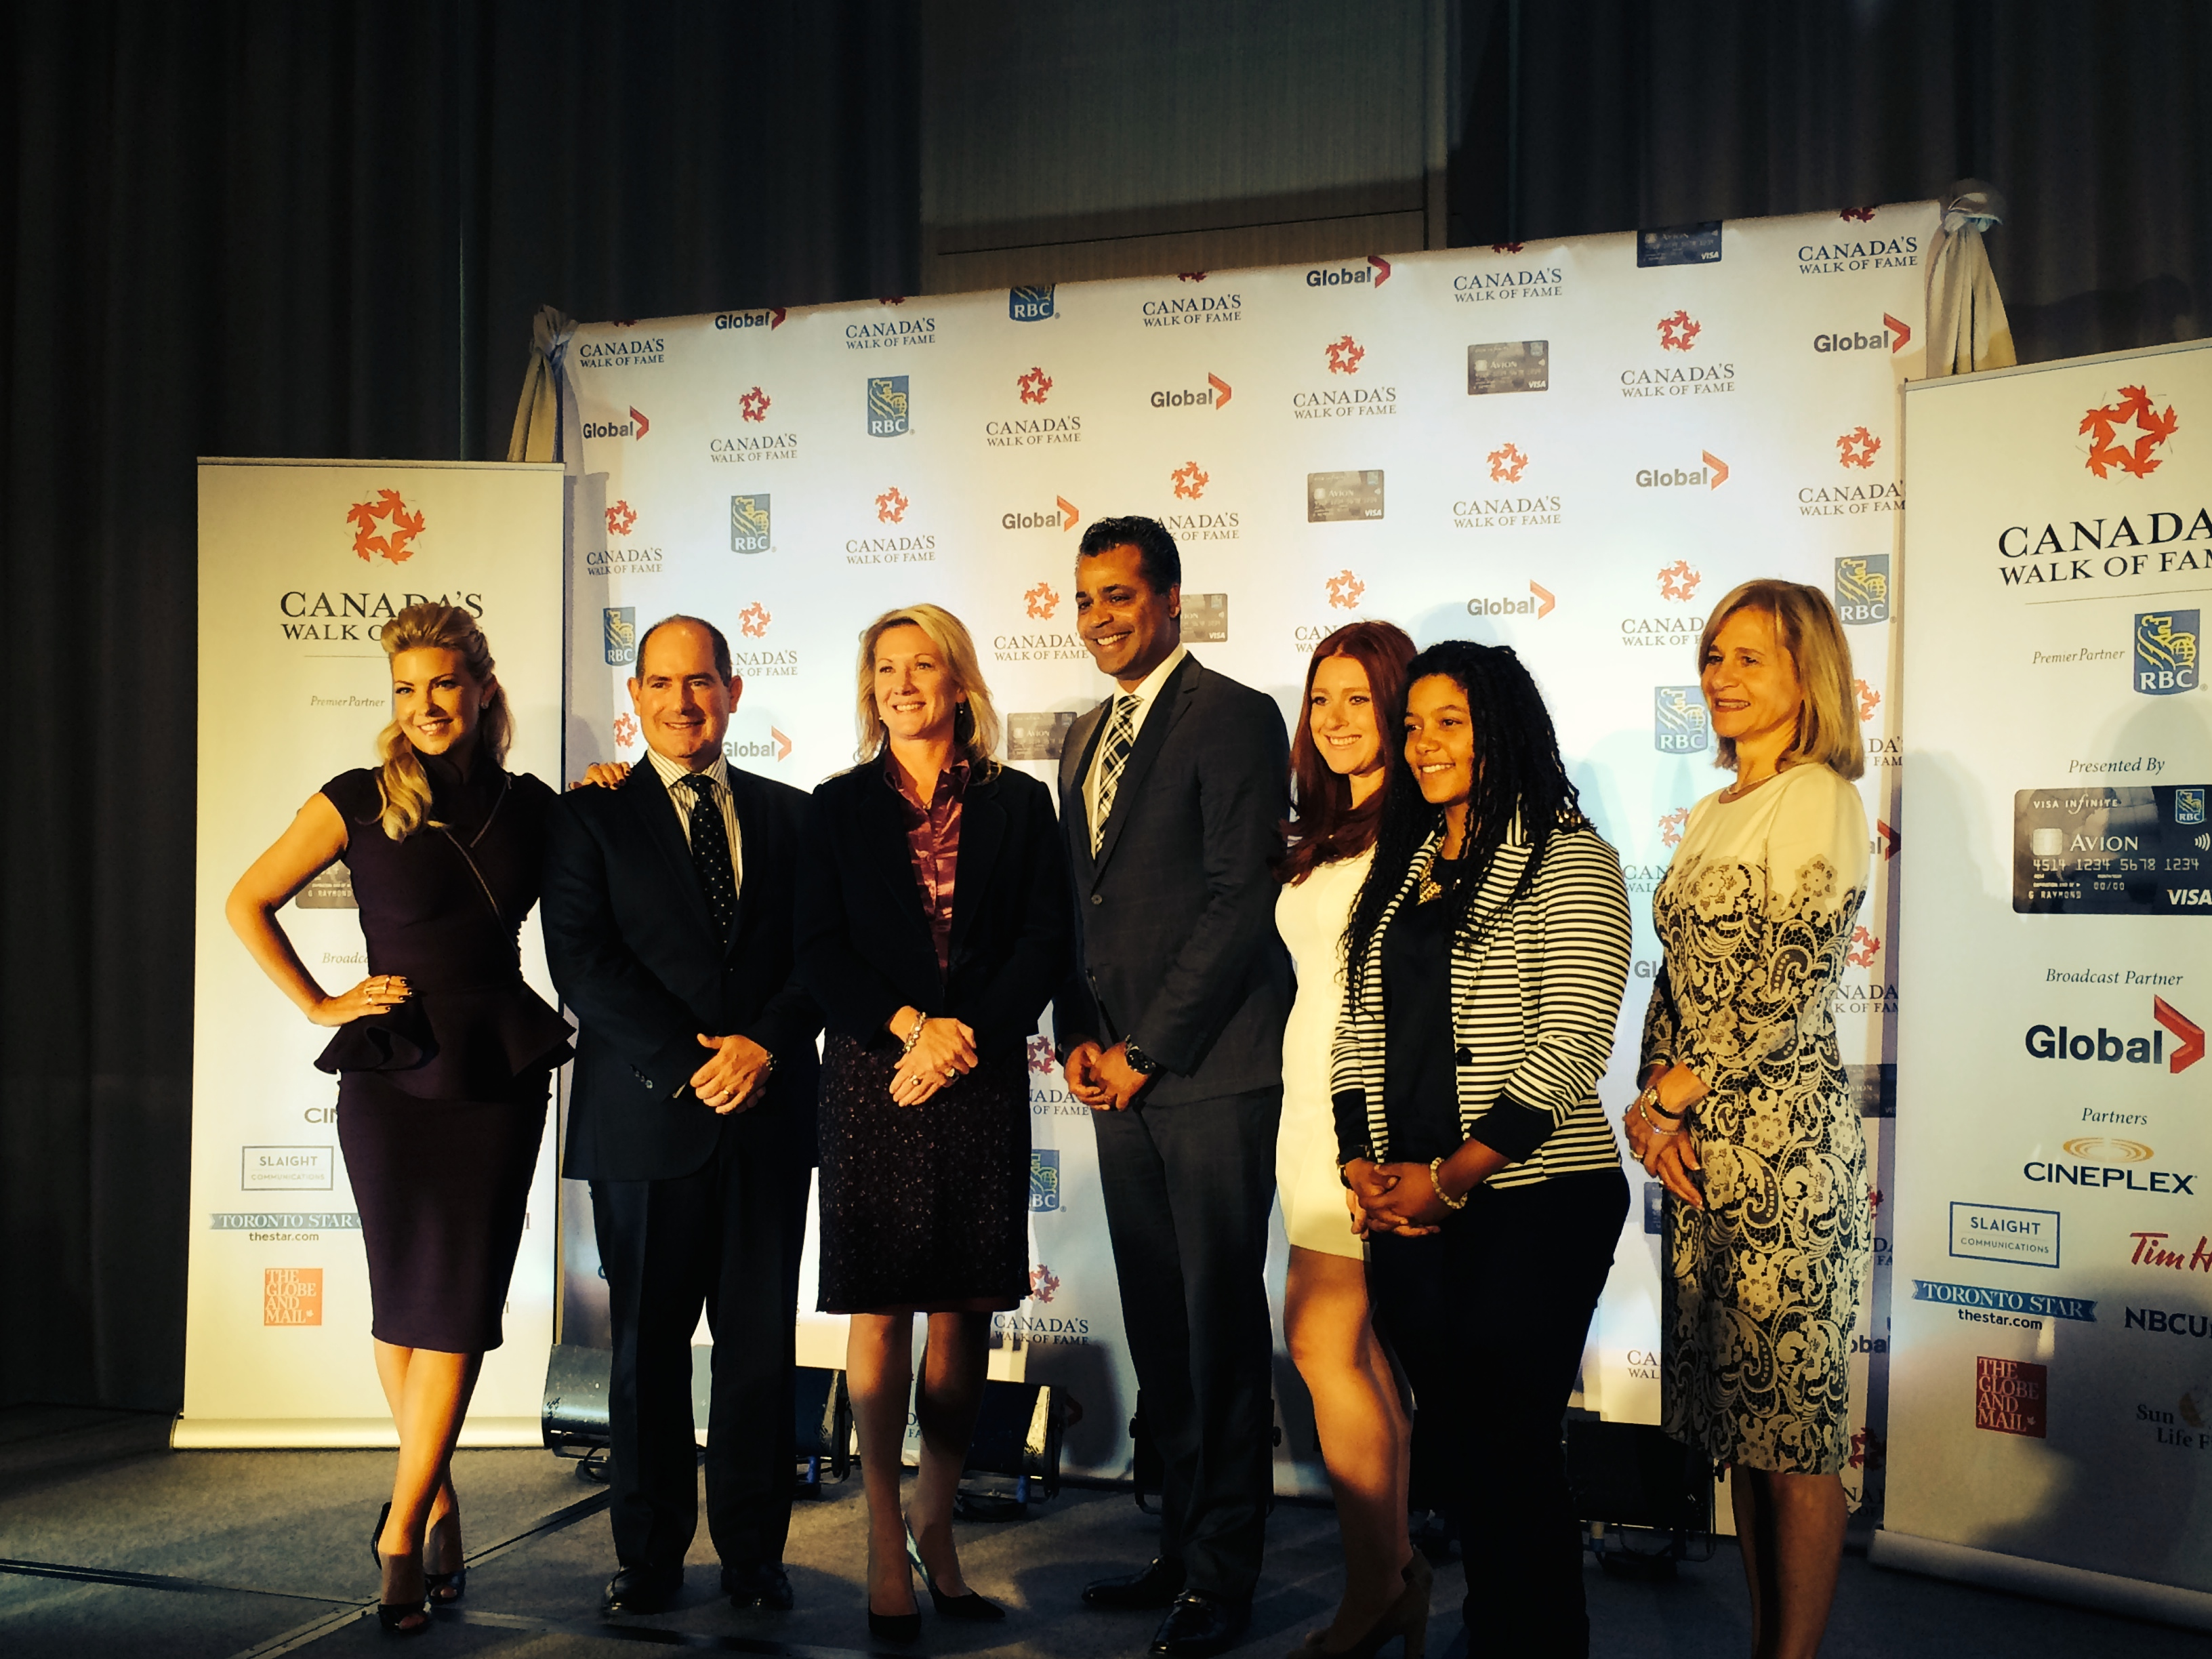 CANADA'S WALK OF FAME 2014 INDUCTEES